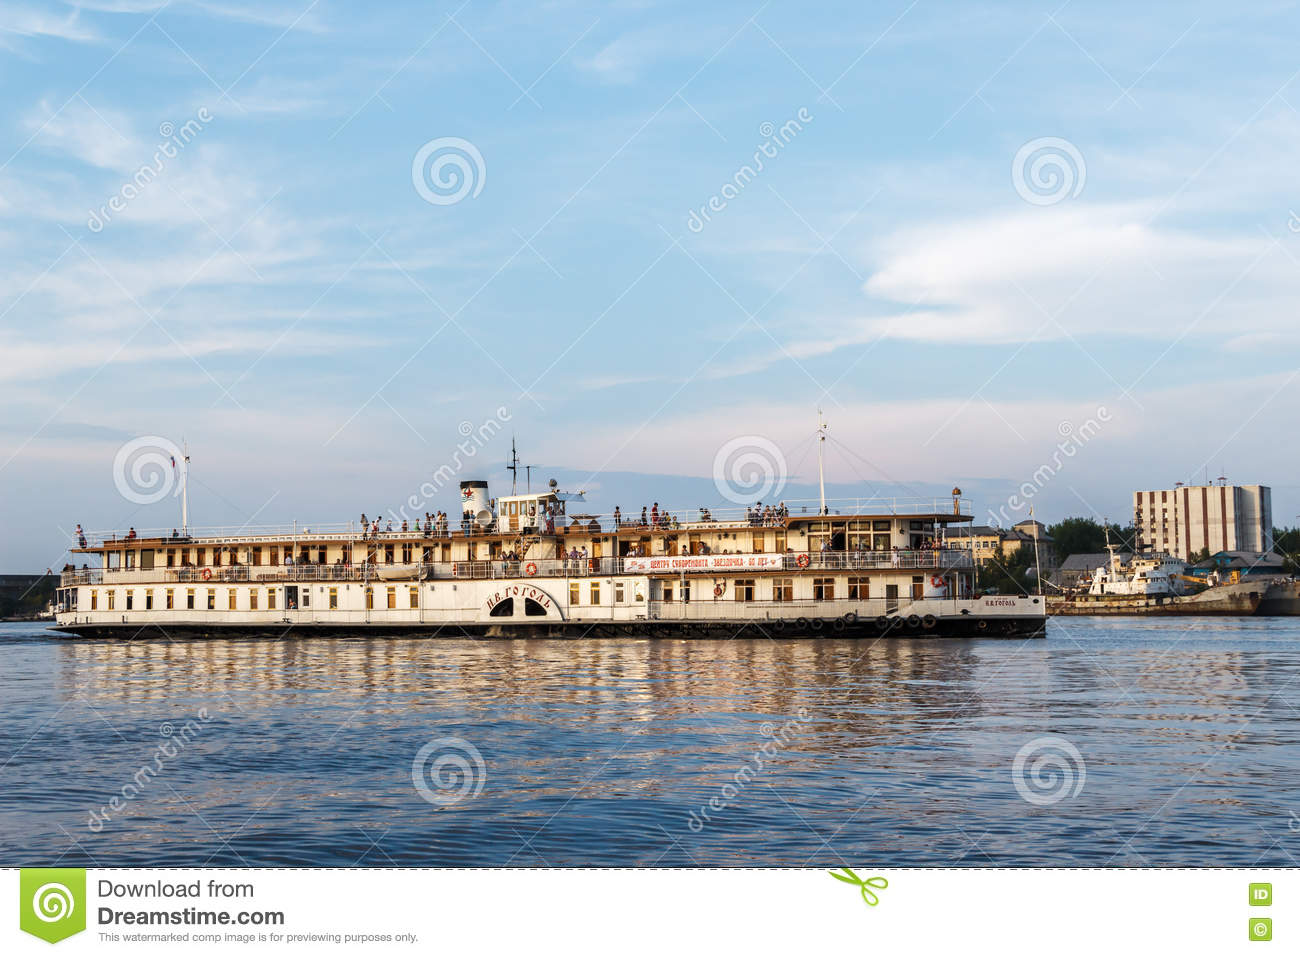 The Oldest Paddle Steamer Of Russia Of N V Gogol On The